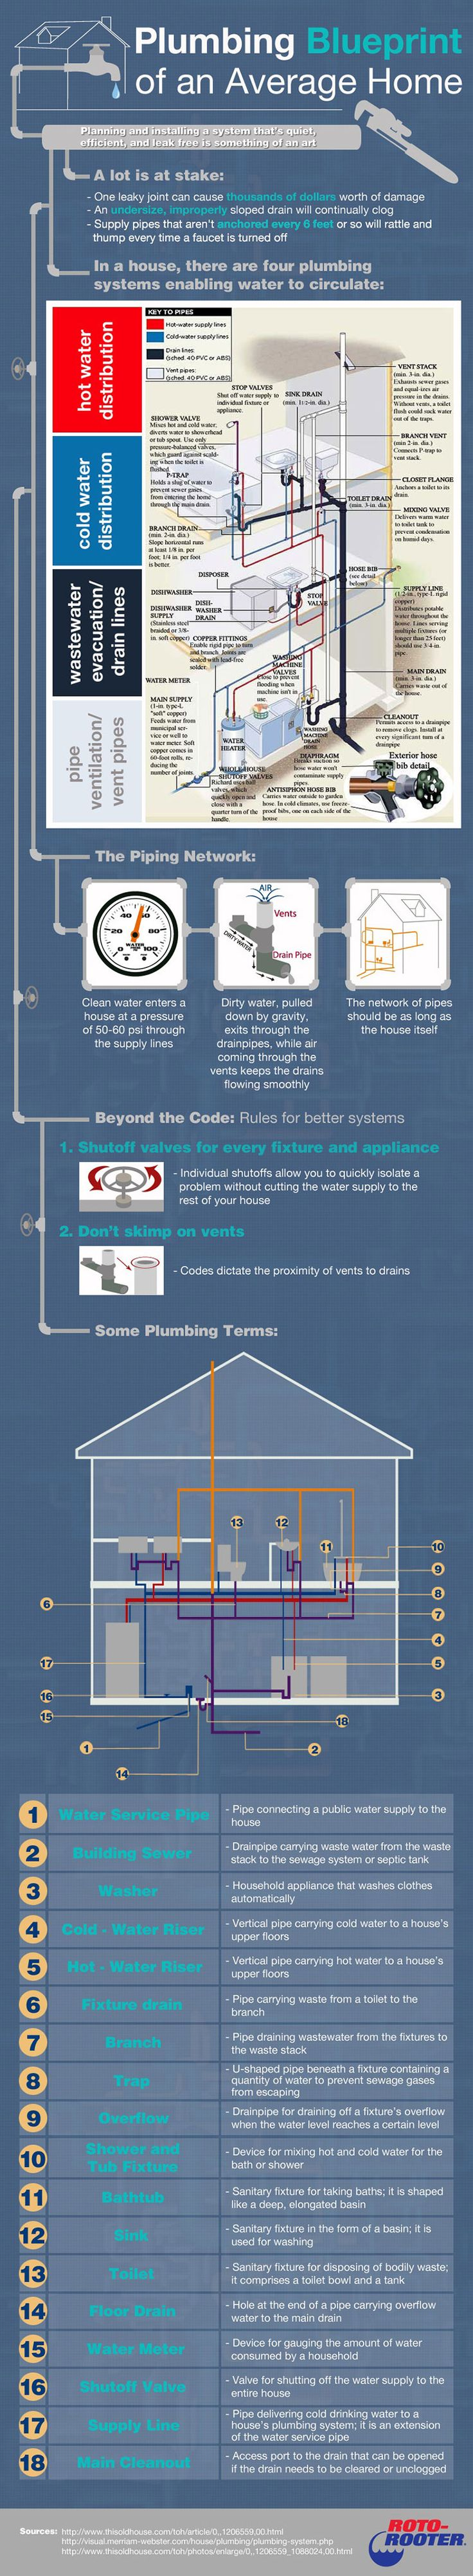 36 best plumbing services images on pinterest commercial interested in the plumbing blueprint of your home check out this roto rooter info graphic that details plumbing blueprints of an average home malvernweather Gallery